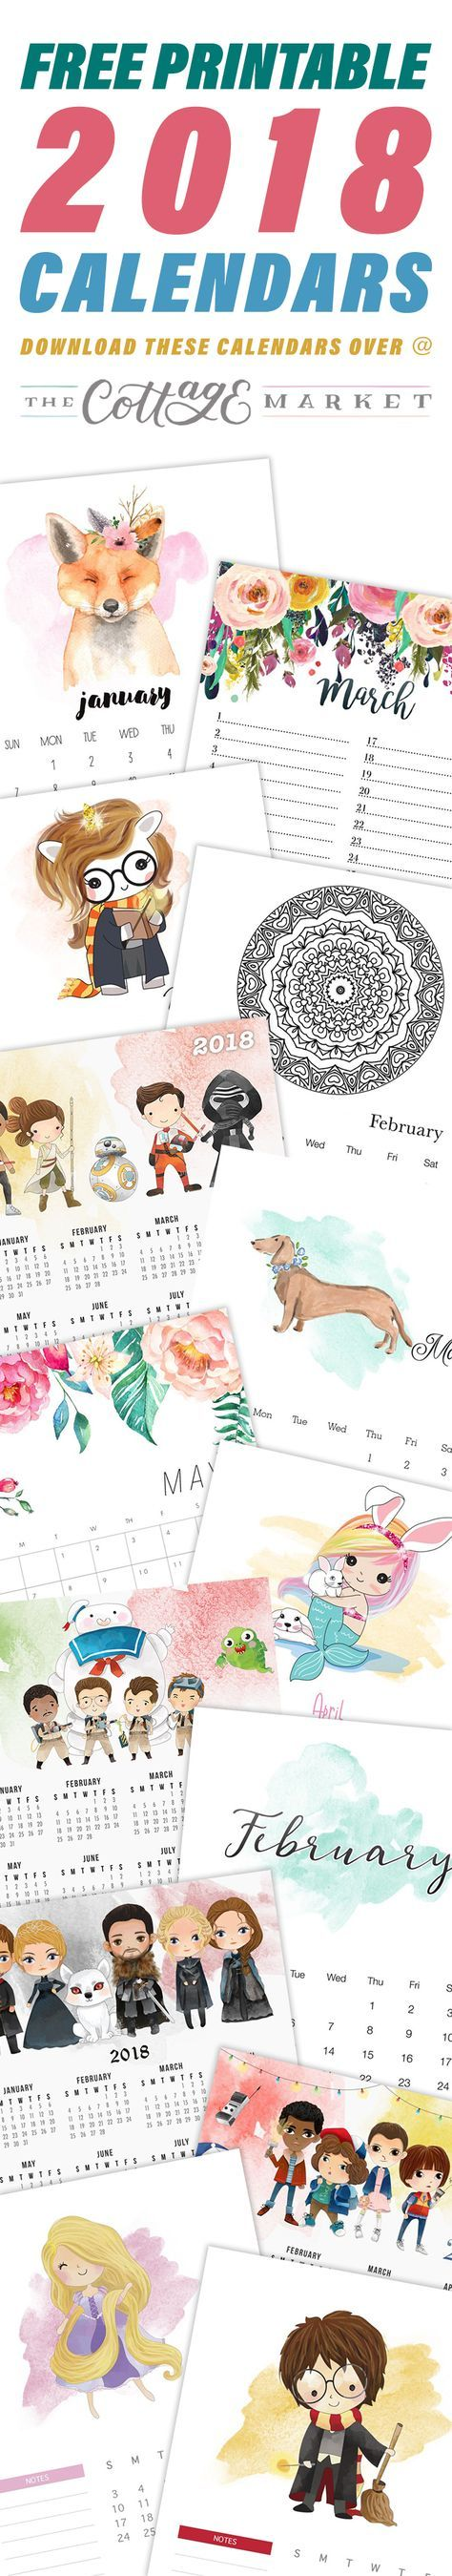 2018 IS HERE and what do you need to start this New Year Off right? A Free Printable Calendar of course. Well we have one for everyone. From The Harry Potter Fan to Star Wars …Pretty Flowers and Watercolor and so much more. Come on in and find the Calendar or Calendars you want to …